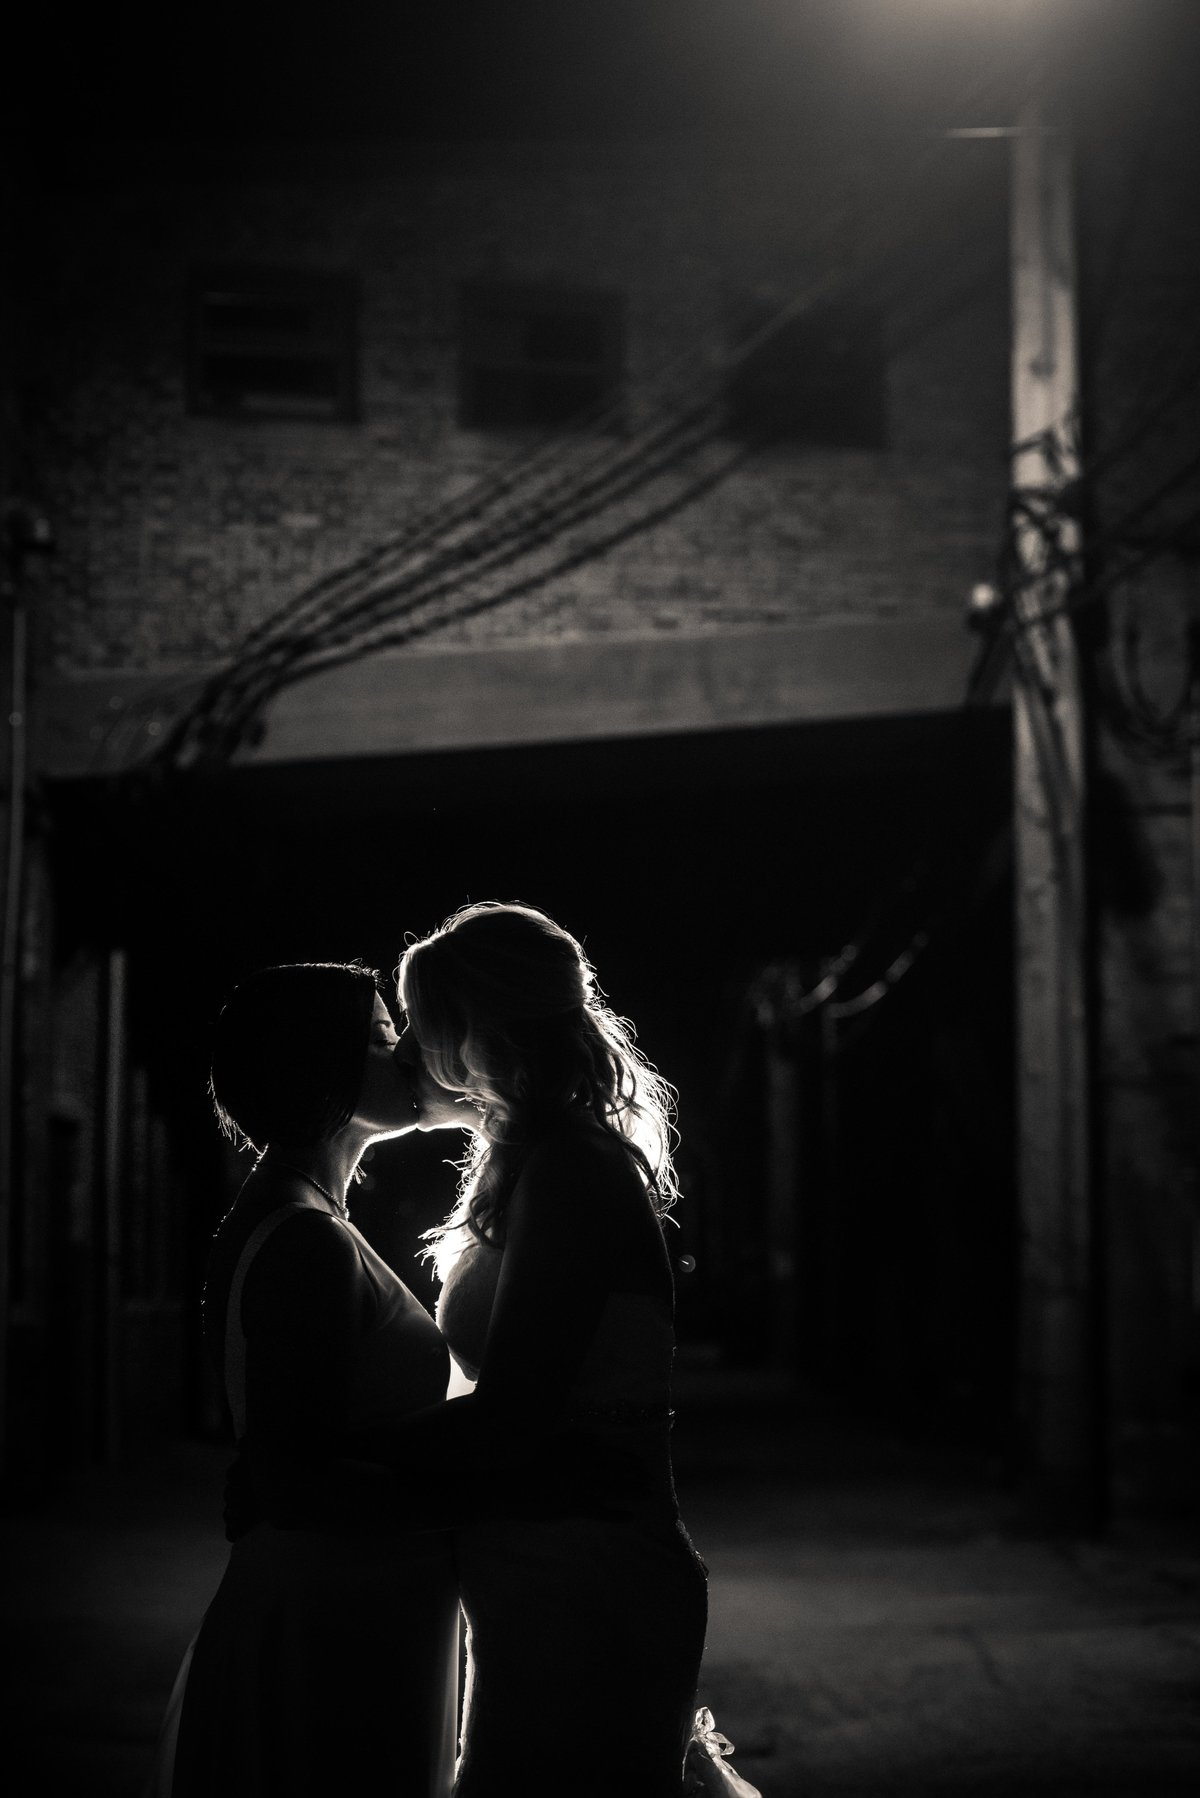 Brides in silhouette, urban background, kiss against backlight, Chicago.